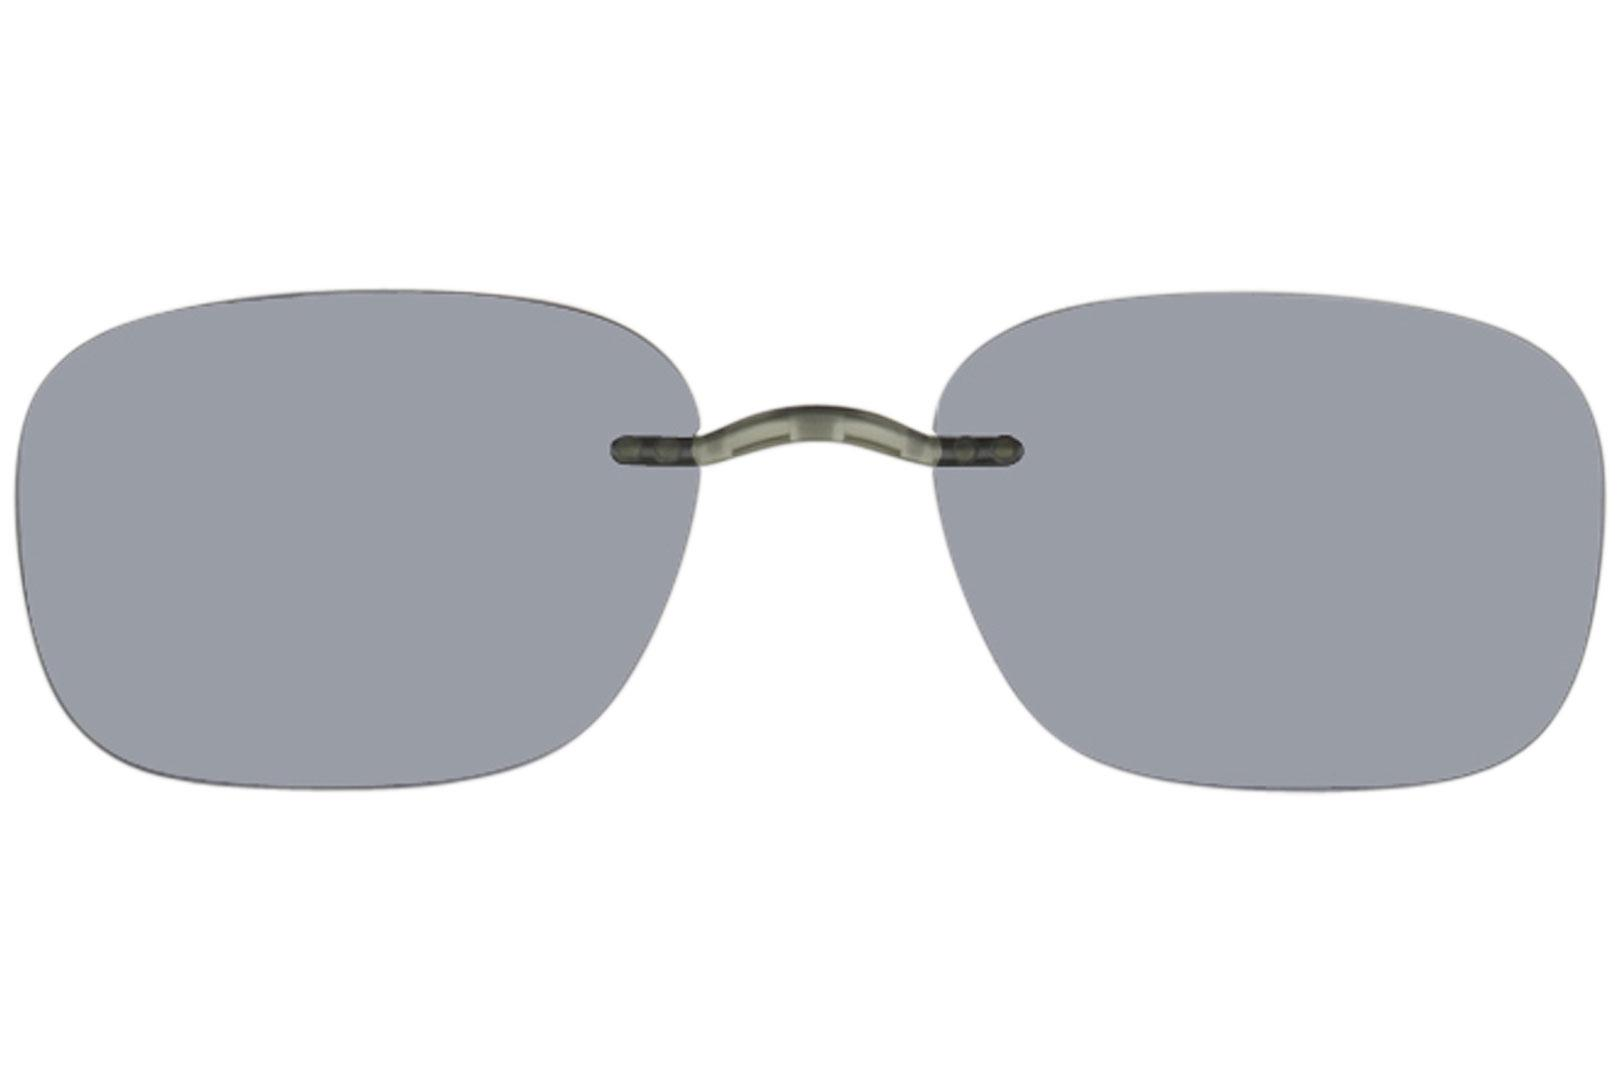 Sunglasses Must Brown Collection Polarized Silhouette Grey Or The On 5065 Clip jSVzGMLUpq